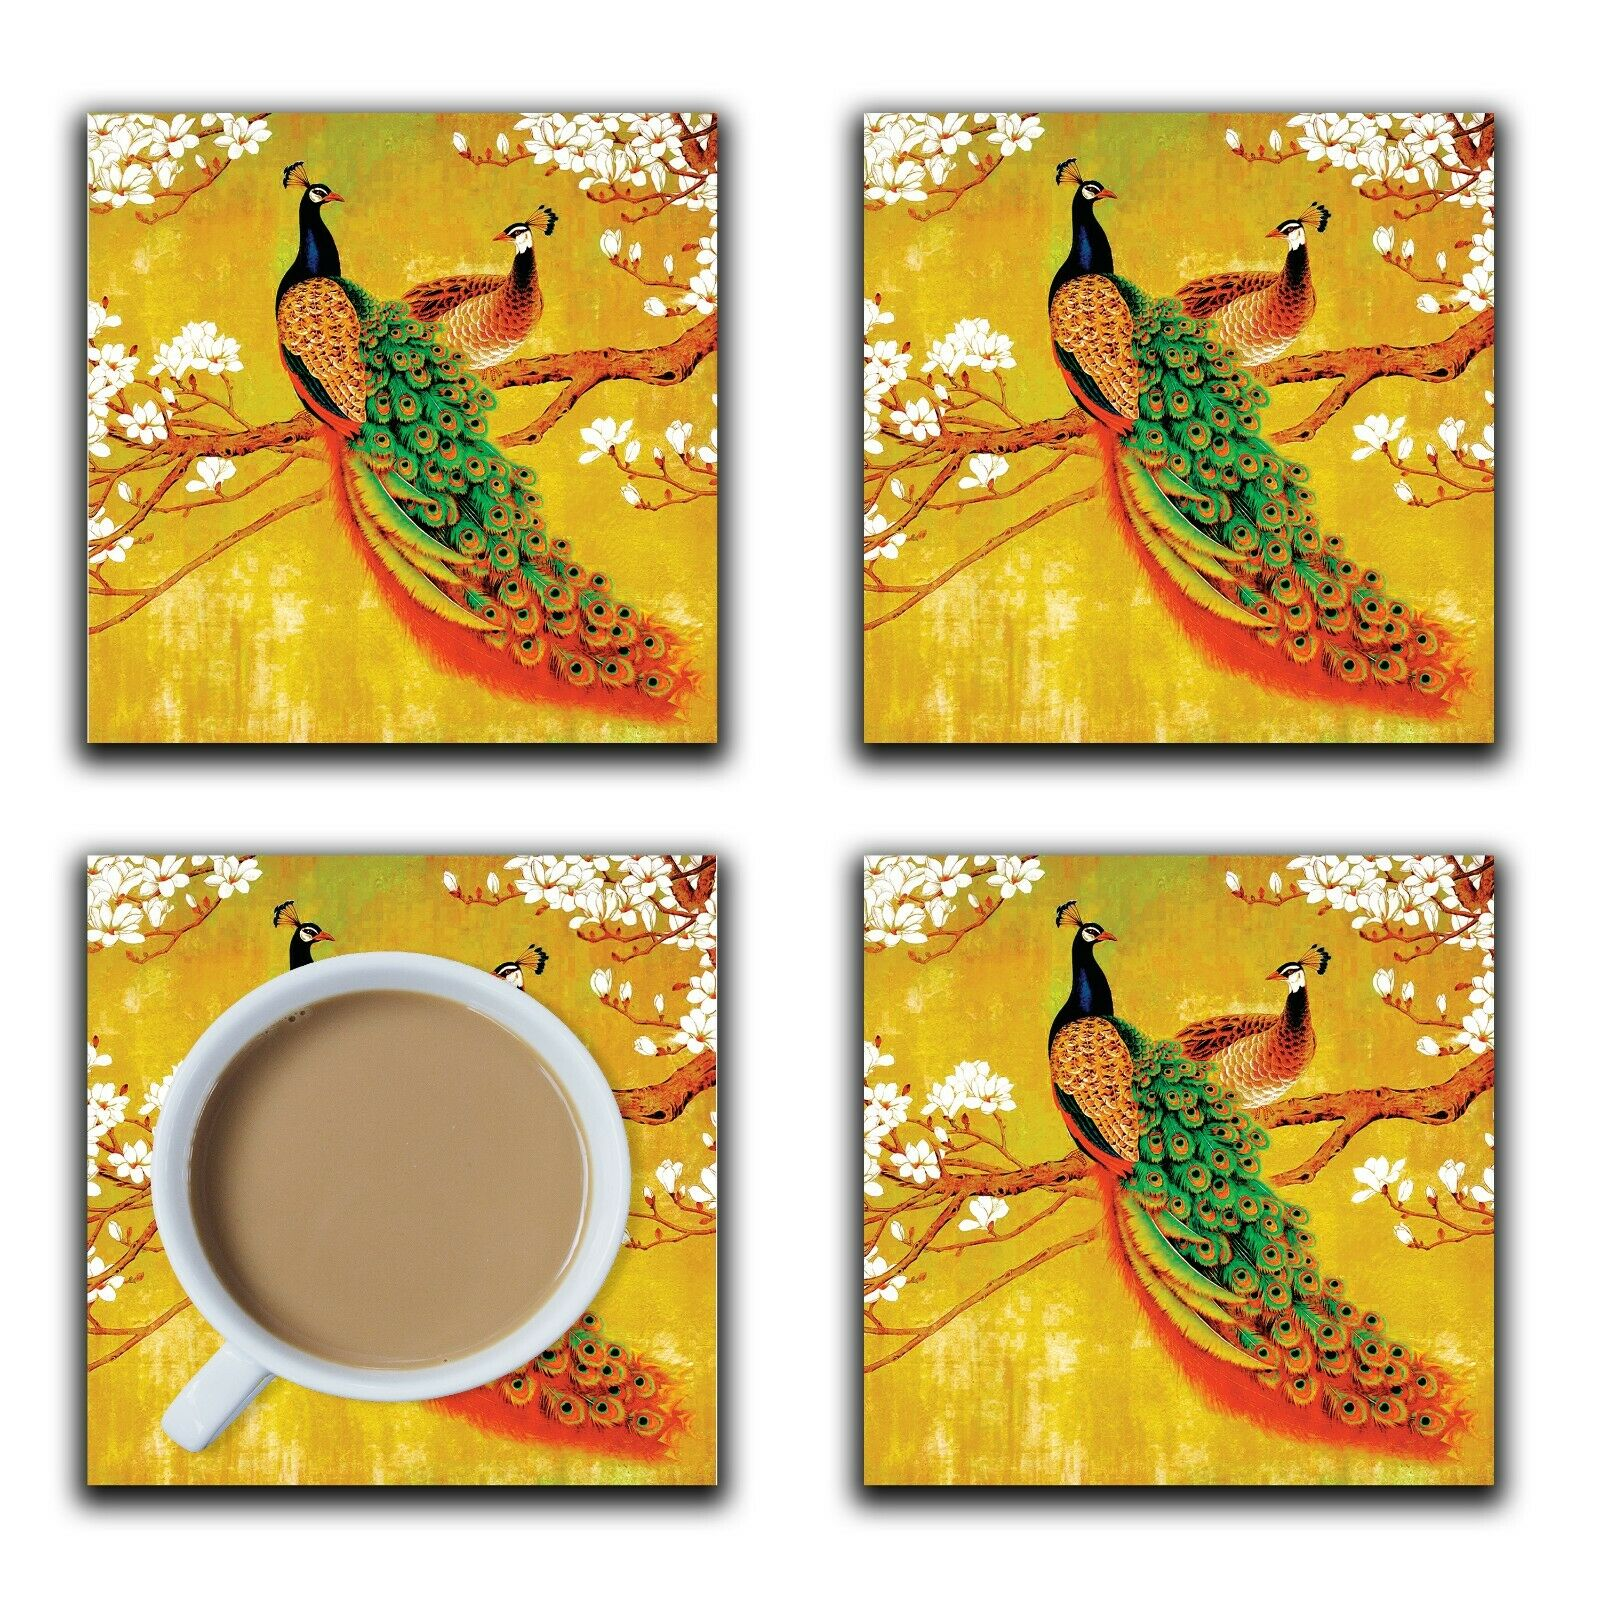 Embossi Printed Peacocks Vintage Style Bird, wood or ceramic tile, set of 4 Coasters